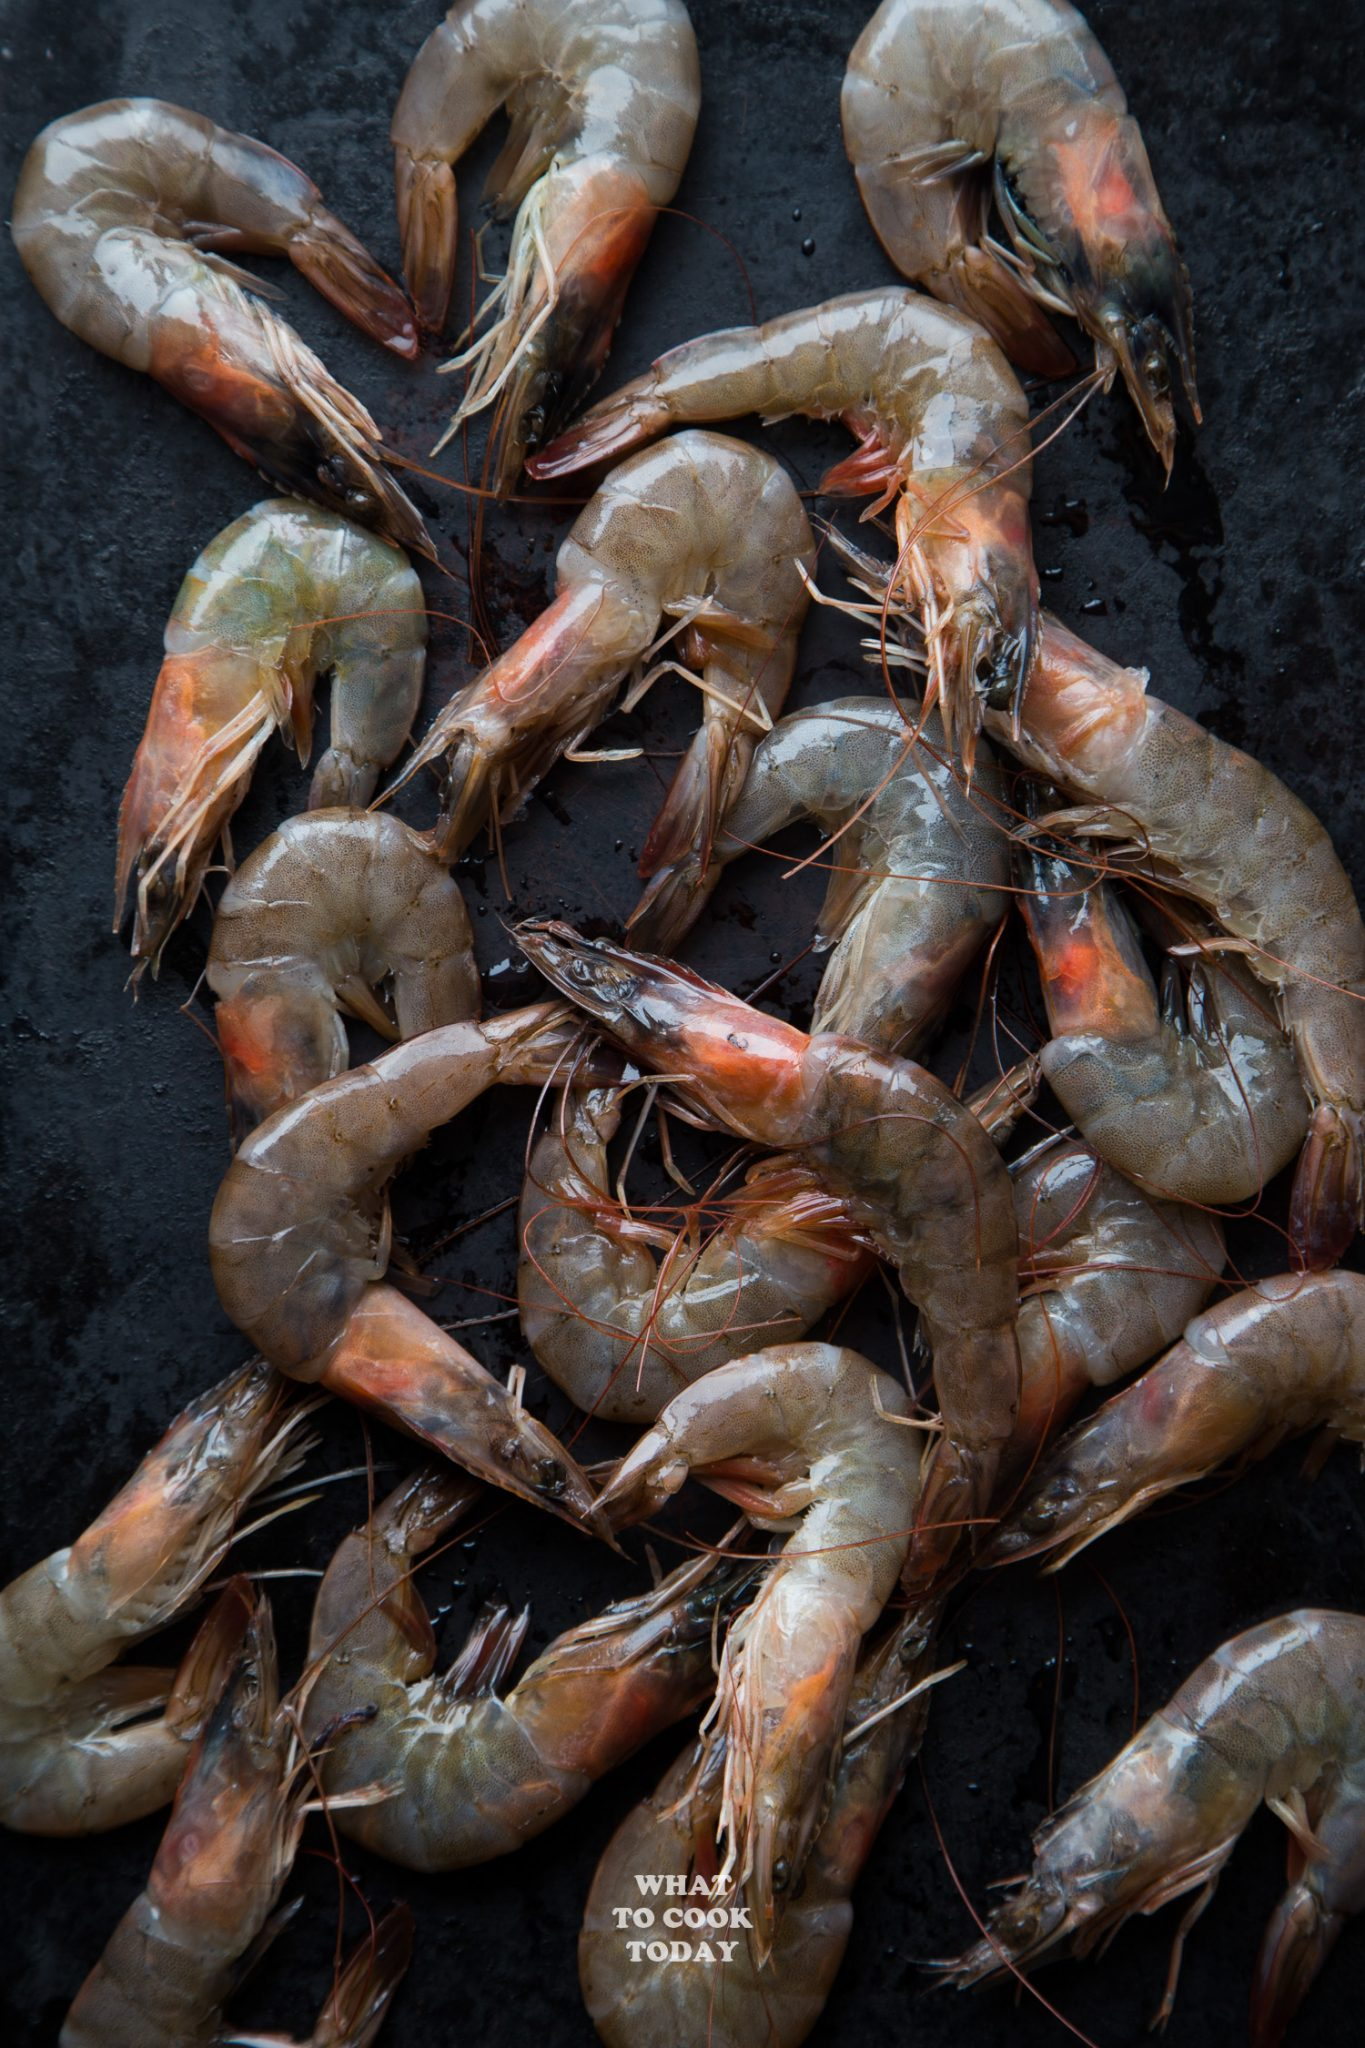 Large Shrimp with Shells and Head intact